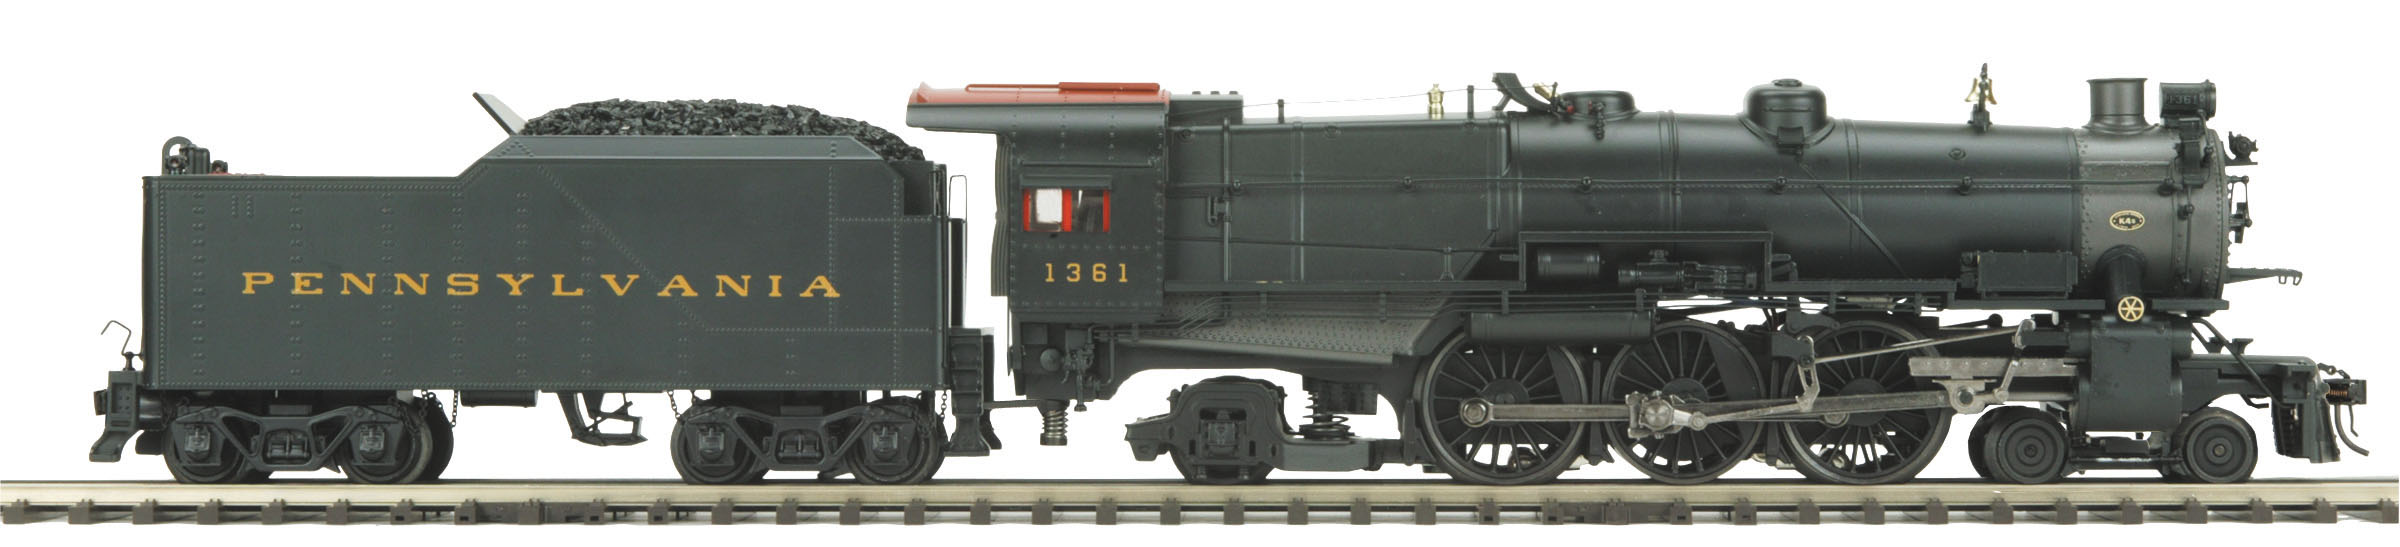 80 3104 1 mth electric trains